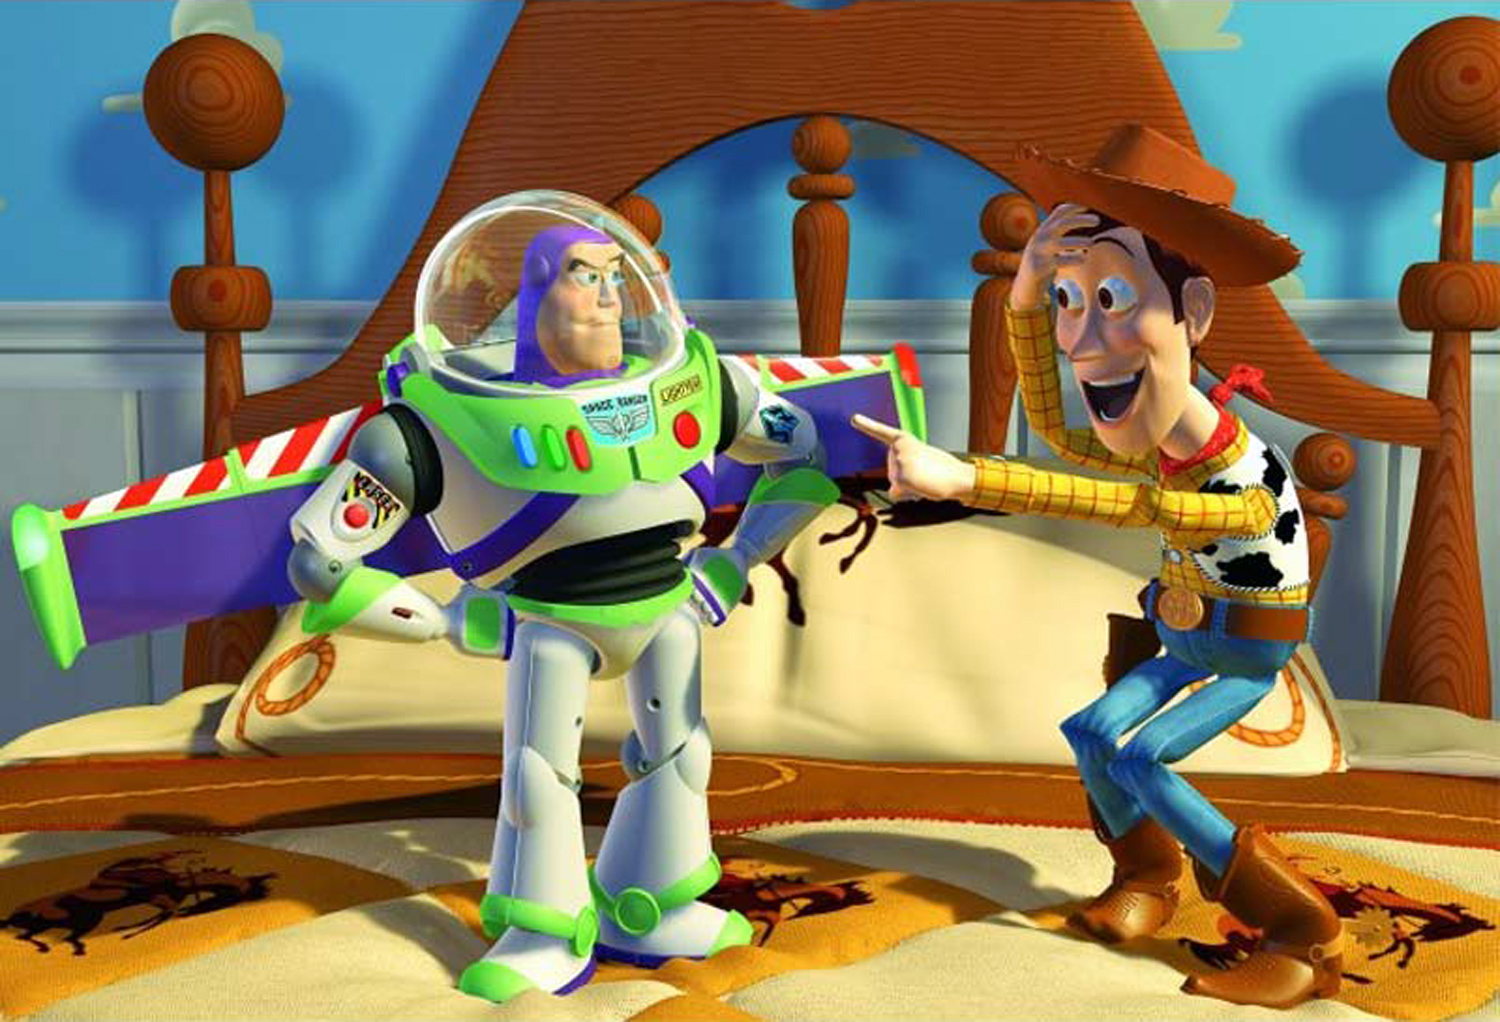 Buzz Lightyear (voiced by Tim Allen) and Woody (voiced by Tom Hanks) in Toy Story (1995)